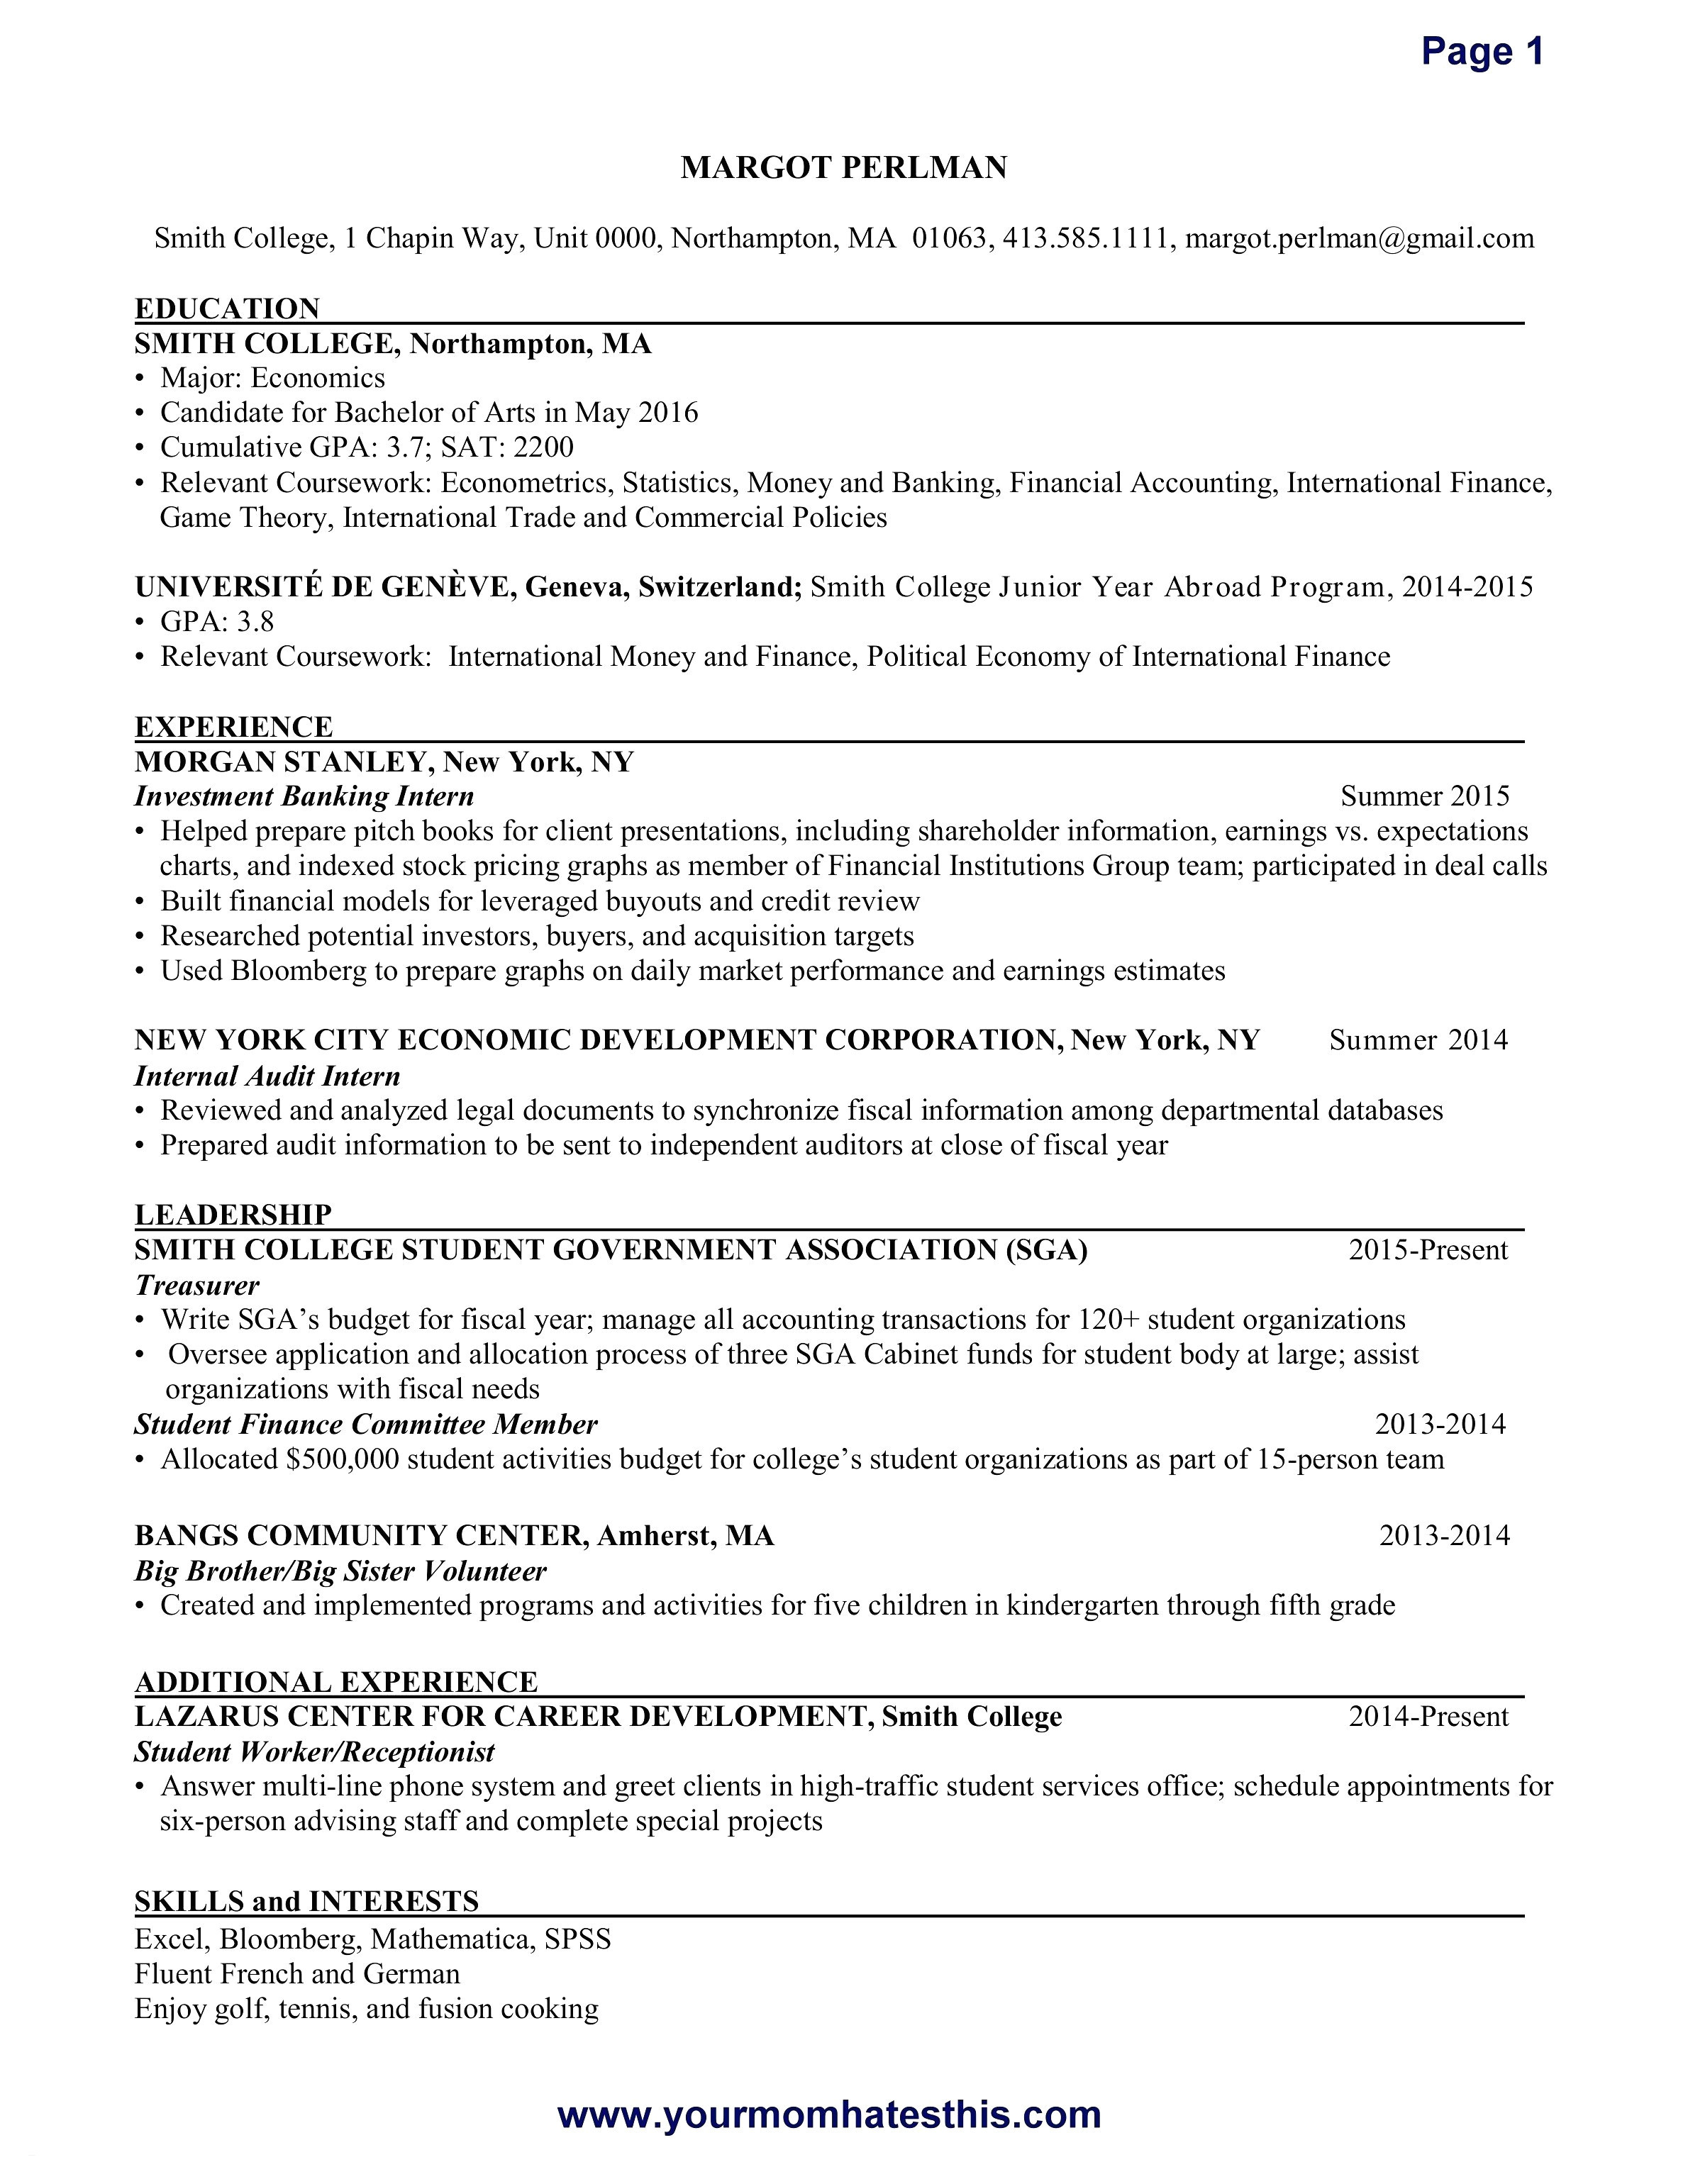 Security Resume Examples - Awesome Security Ficer Resume Sample